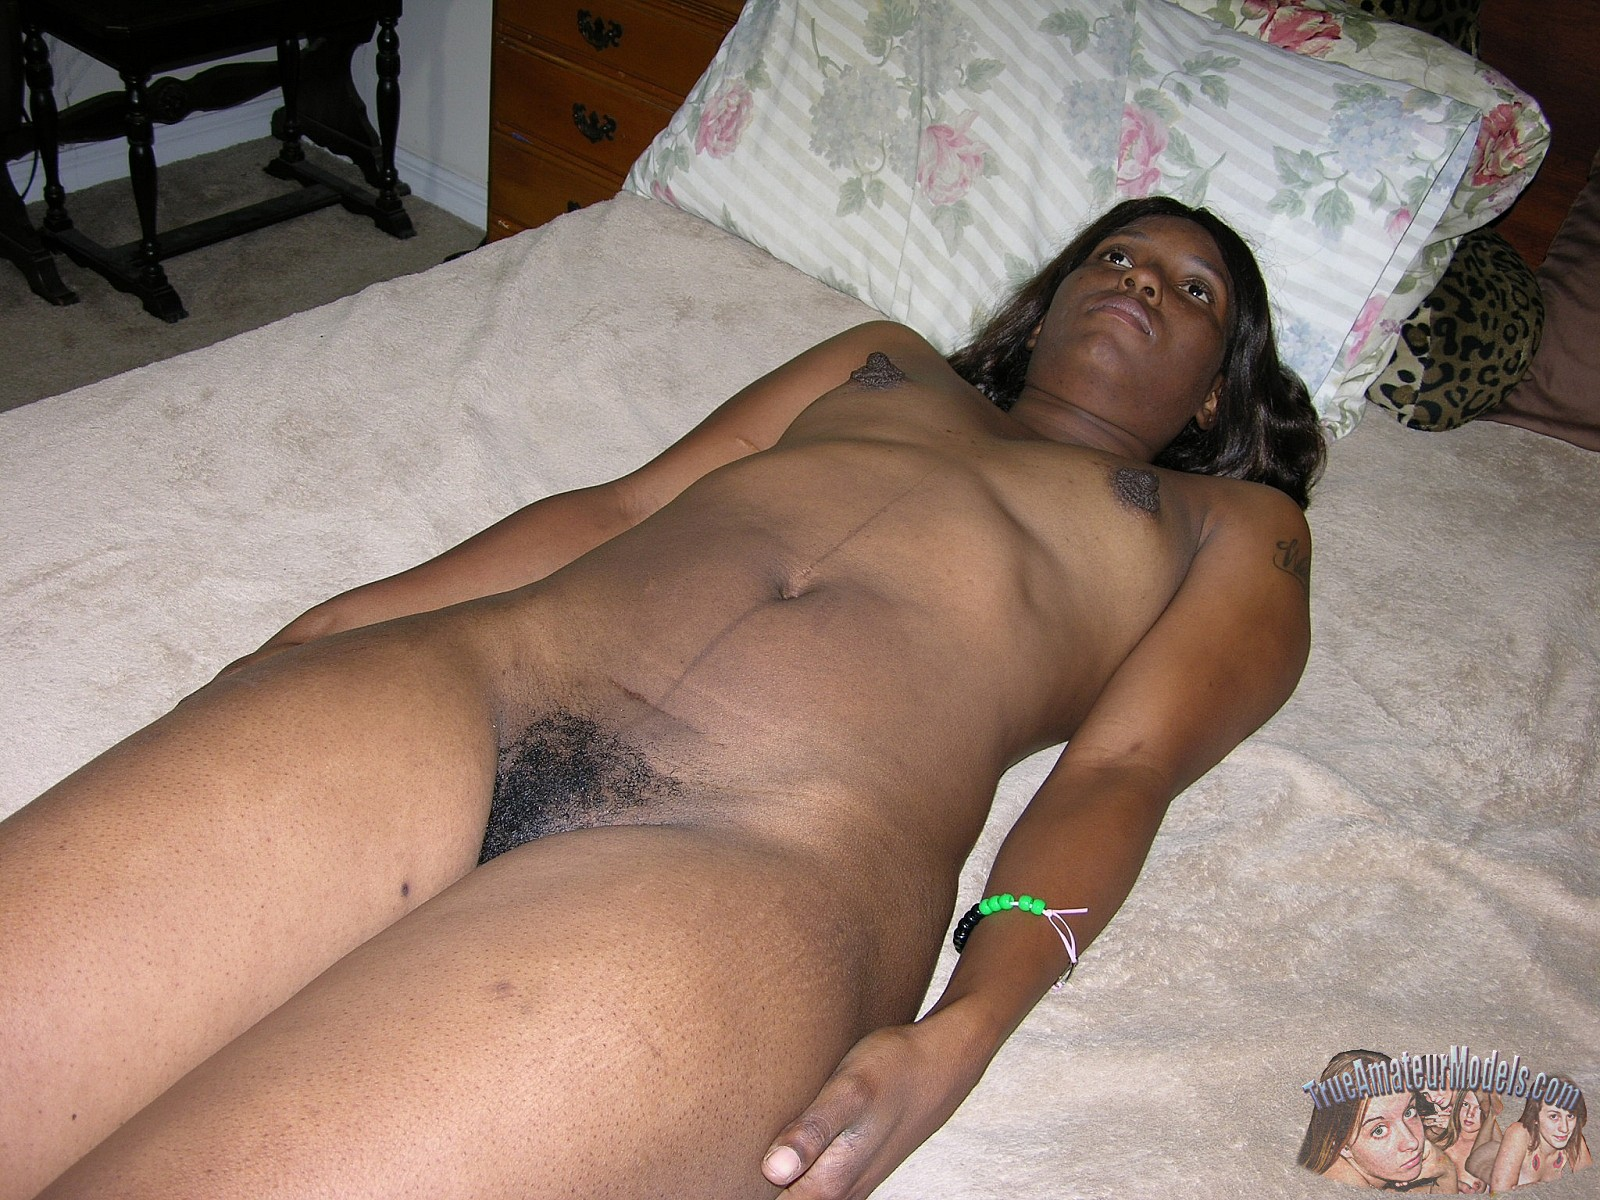 Amateur Black Pussy Eclusive First Time Models